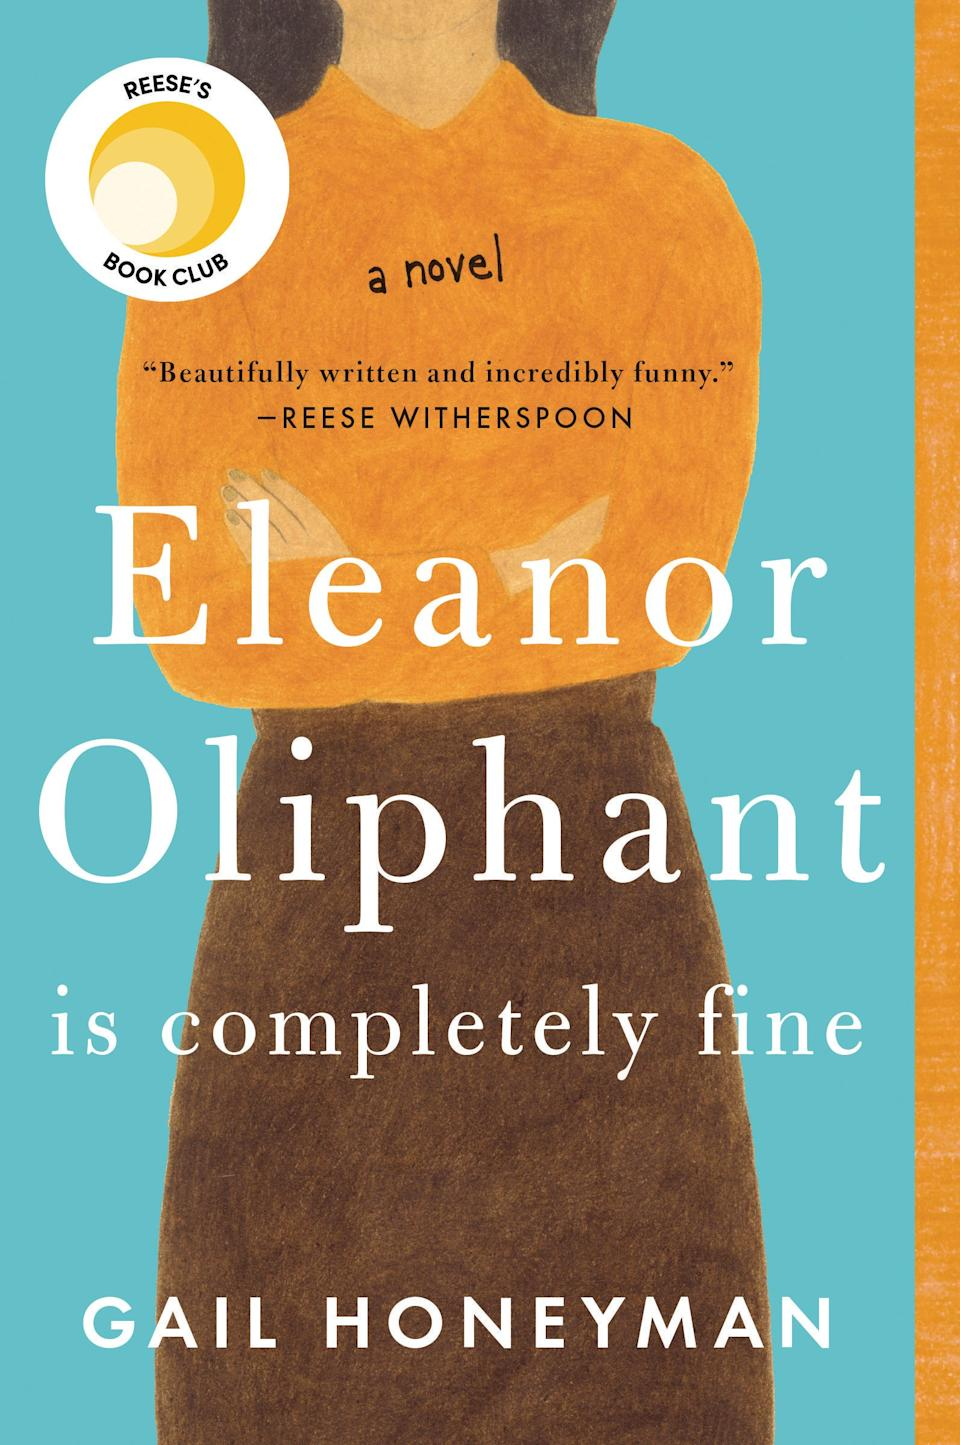 Eleanor Oliphant Is Completely Fine (Photo via Amazon)